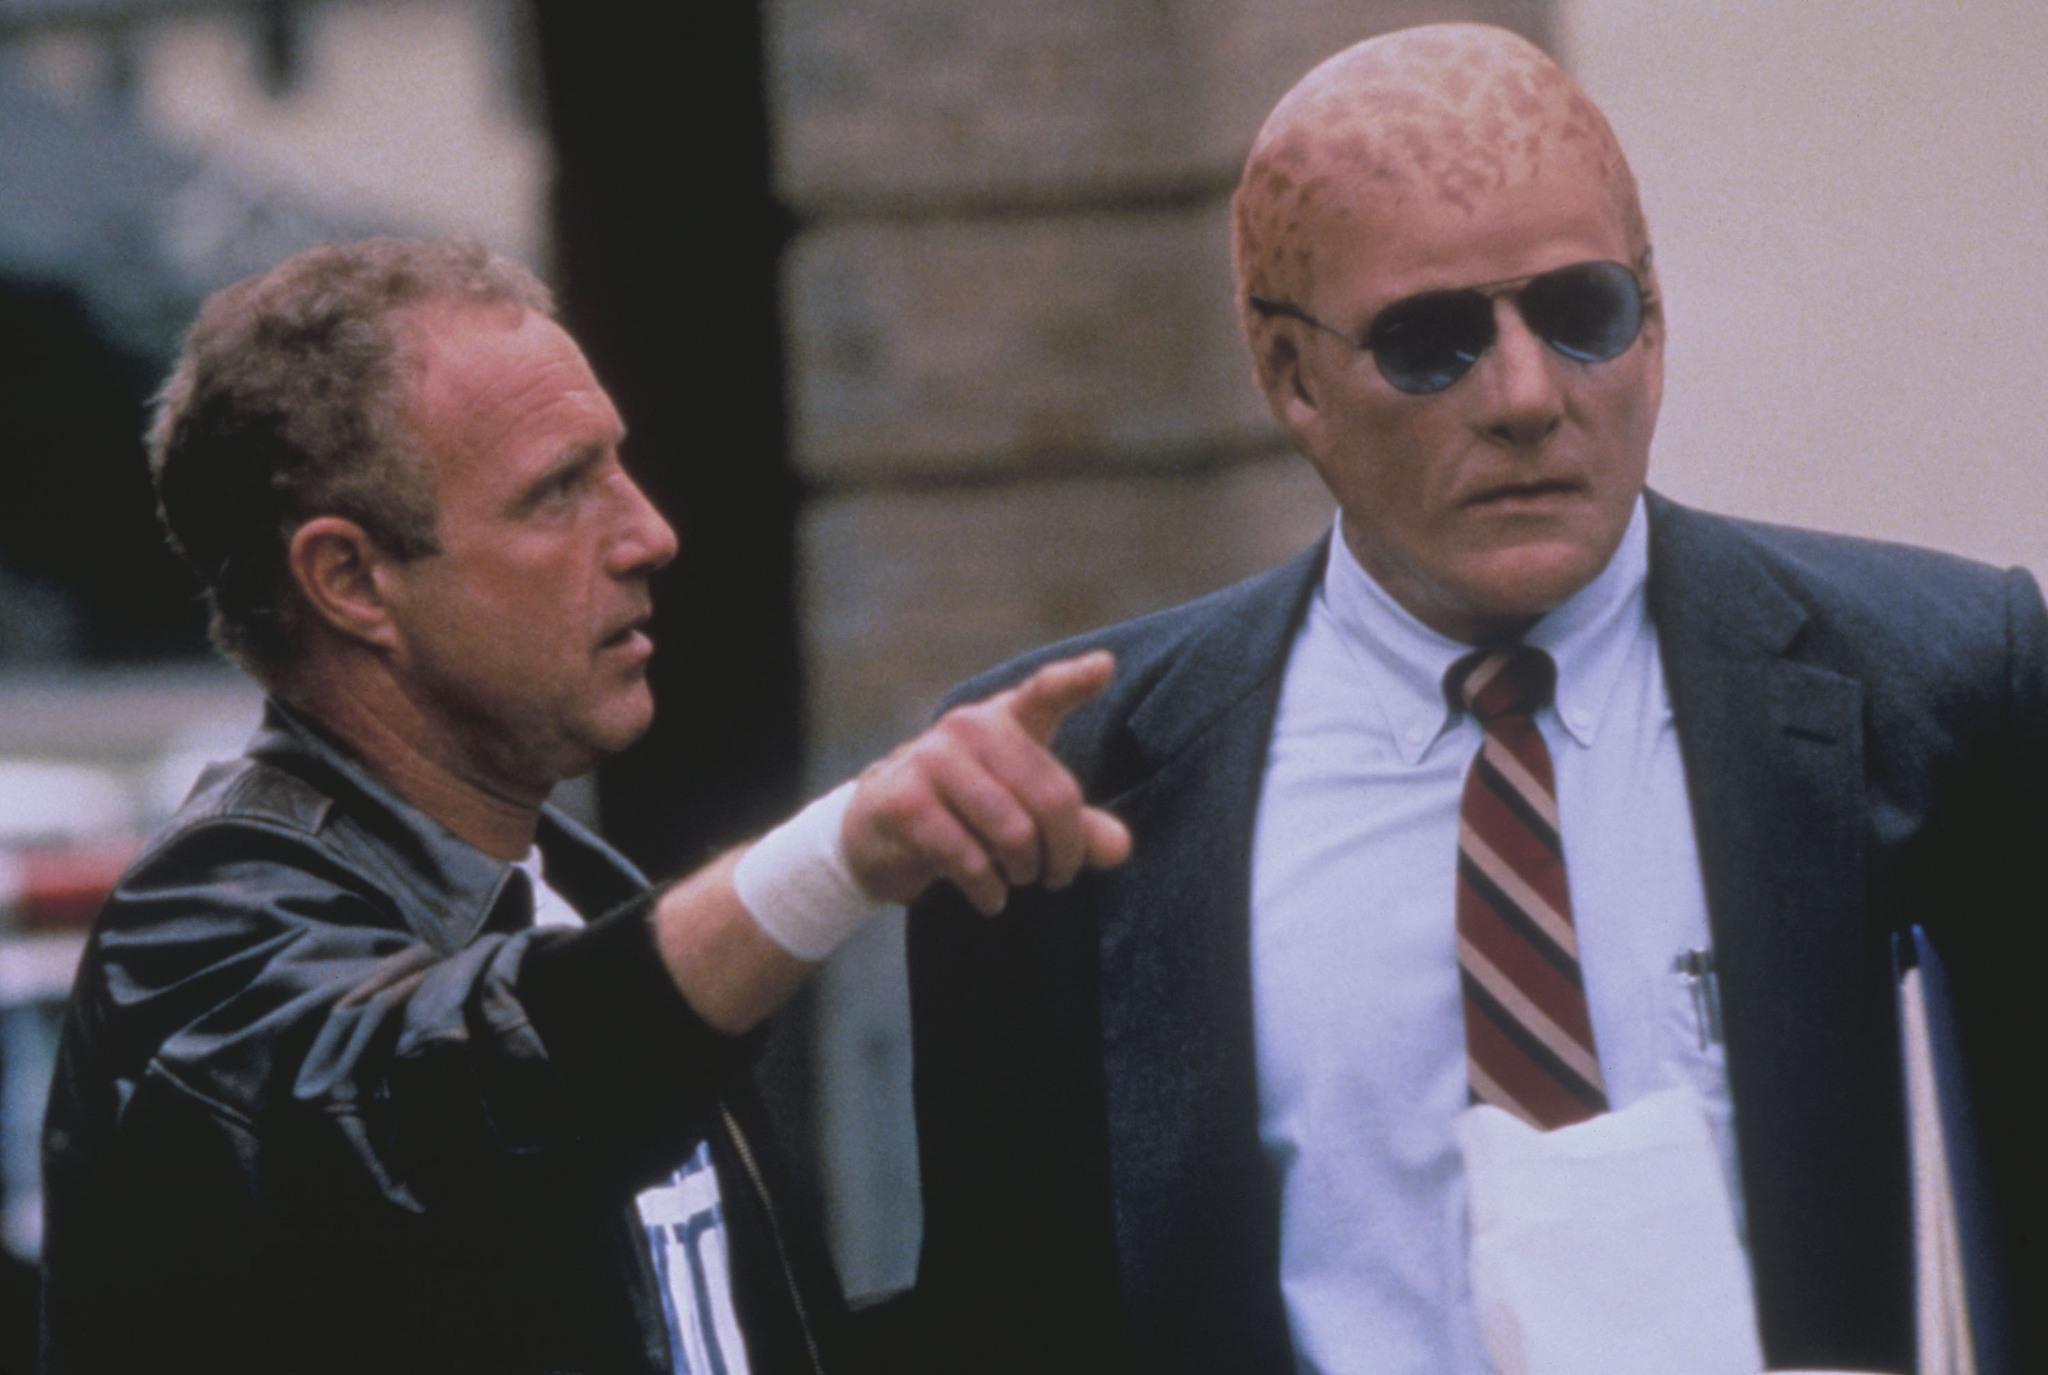 Now That Disney Owns Fox, the 'Alien Nation' Remake from Jeff Nichols Has Been Put on Hold - Bloody Disgusting